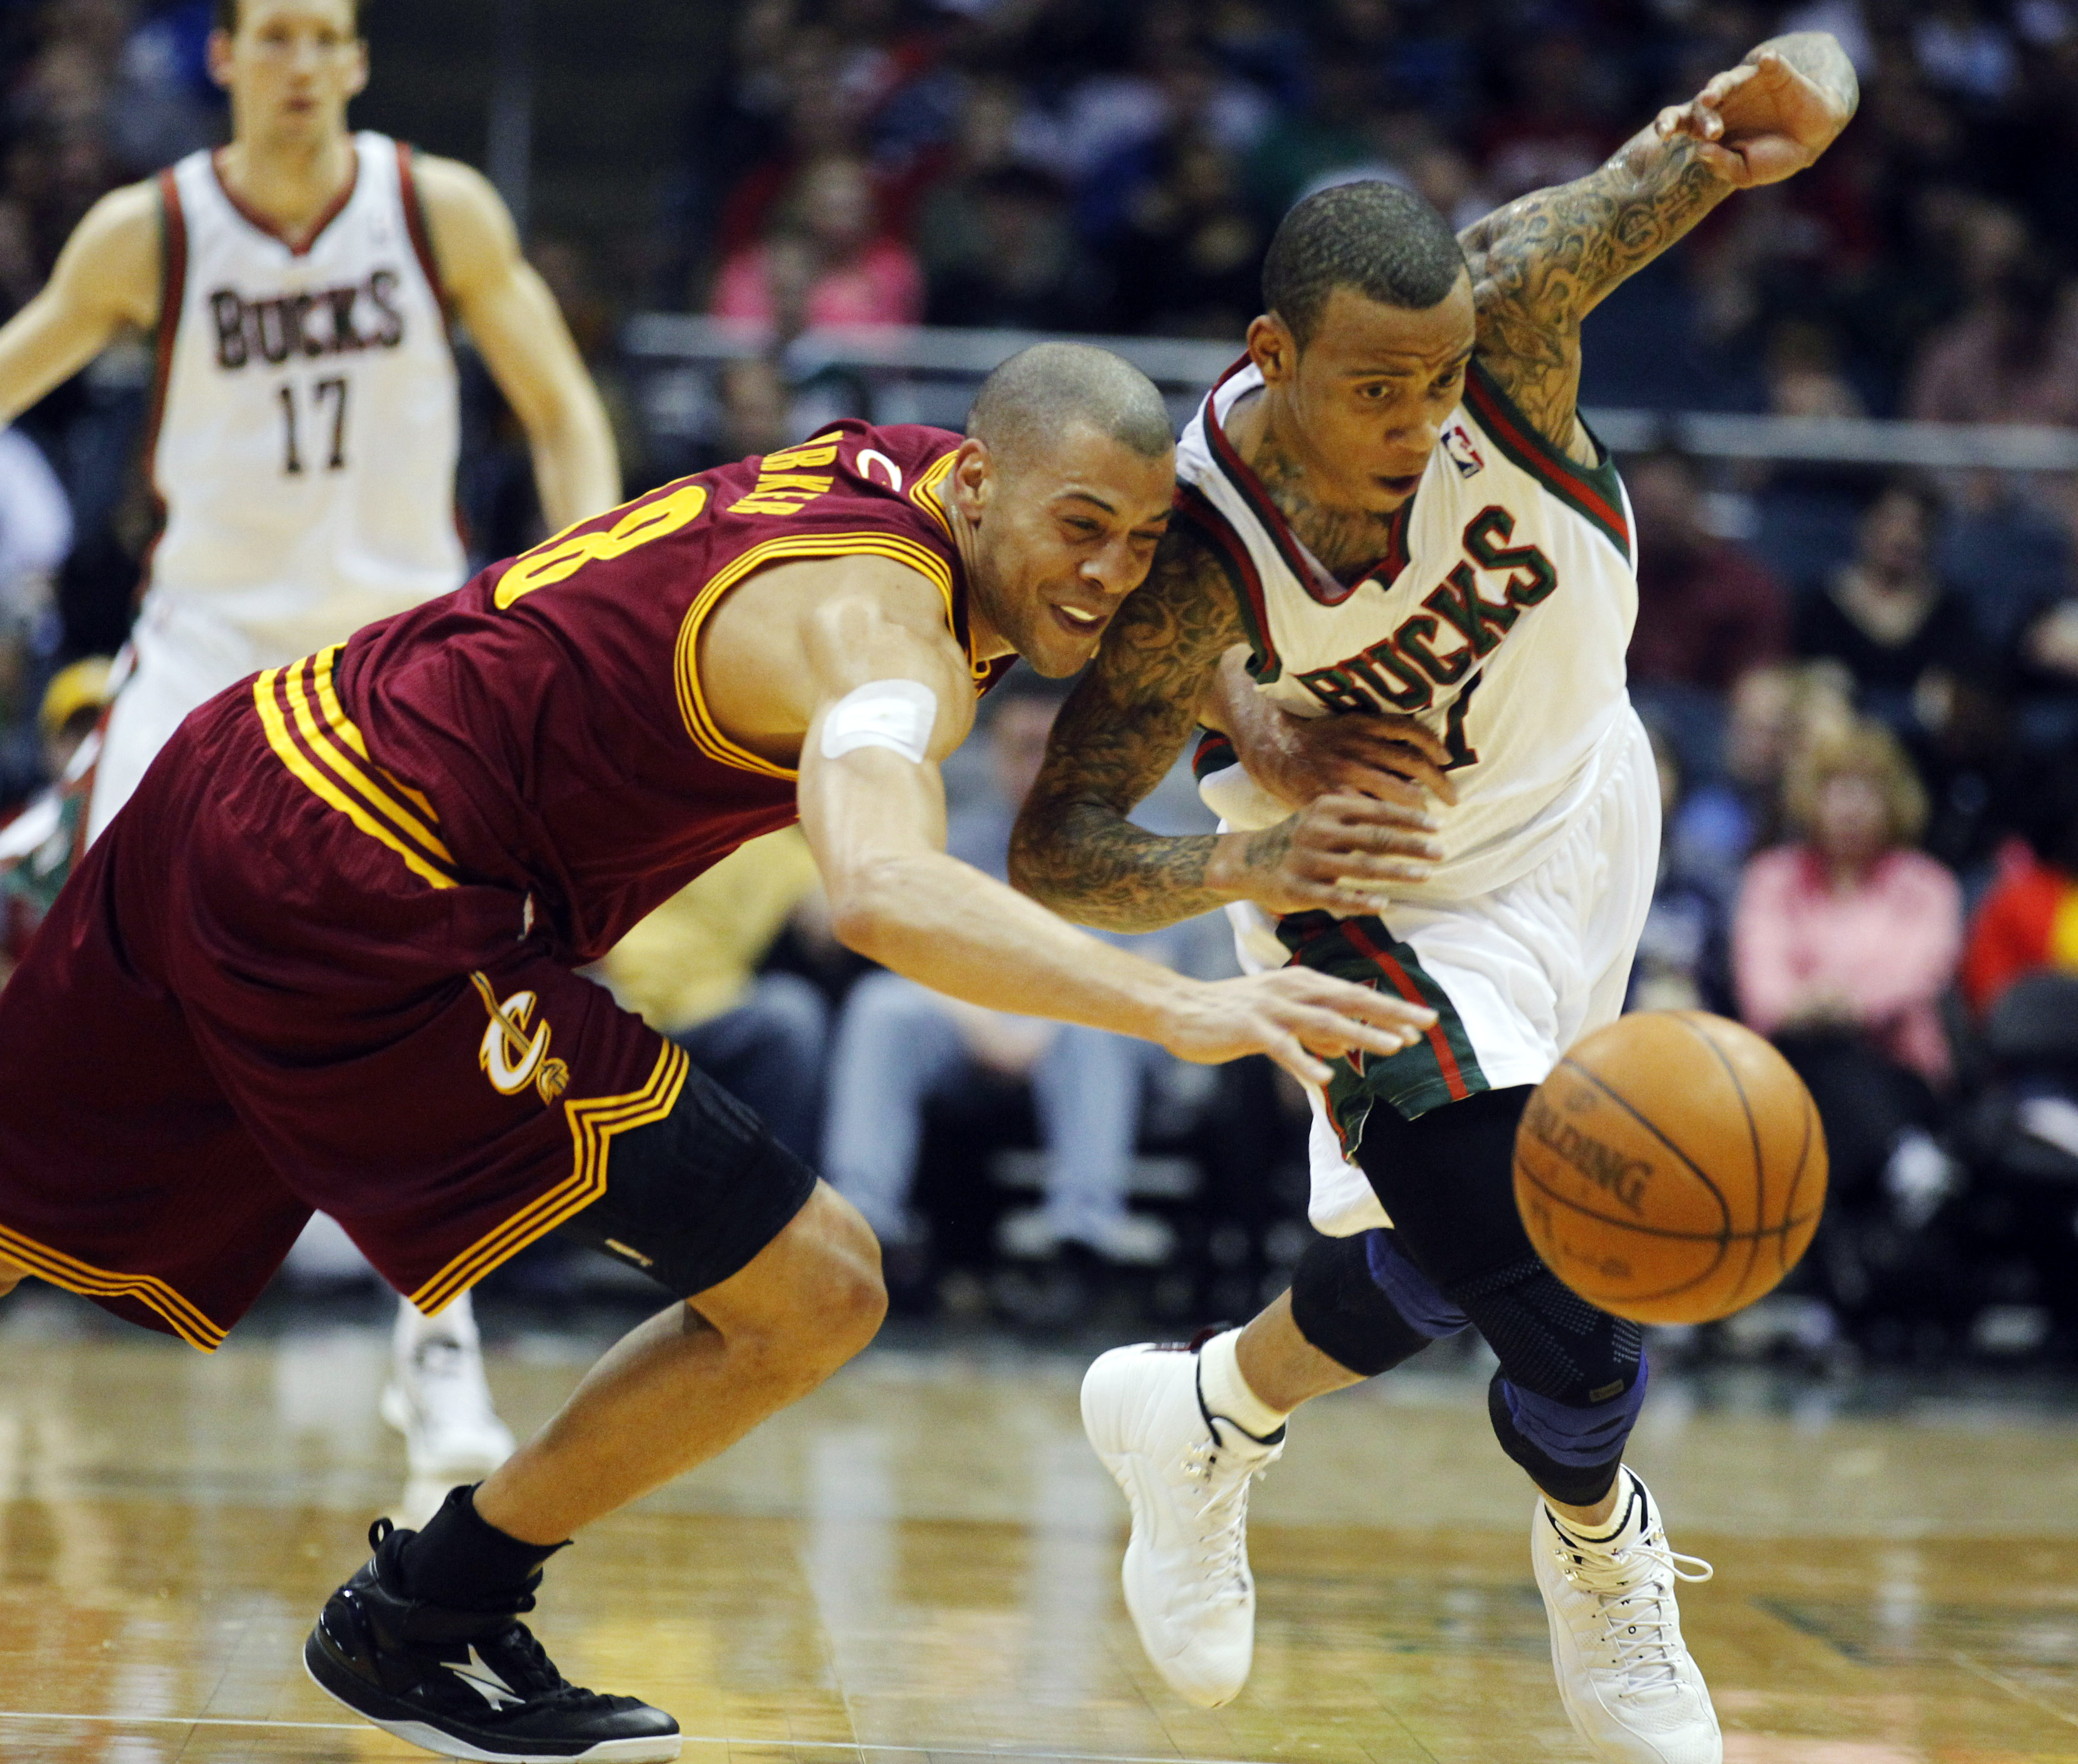 Cavaliers suffer 9th straight loss - The Blade